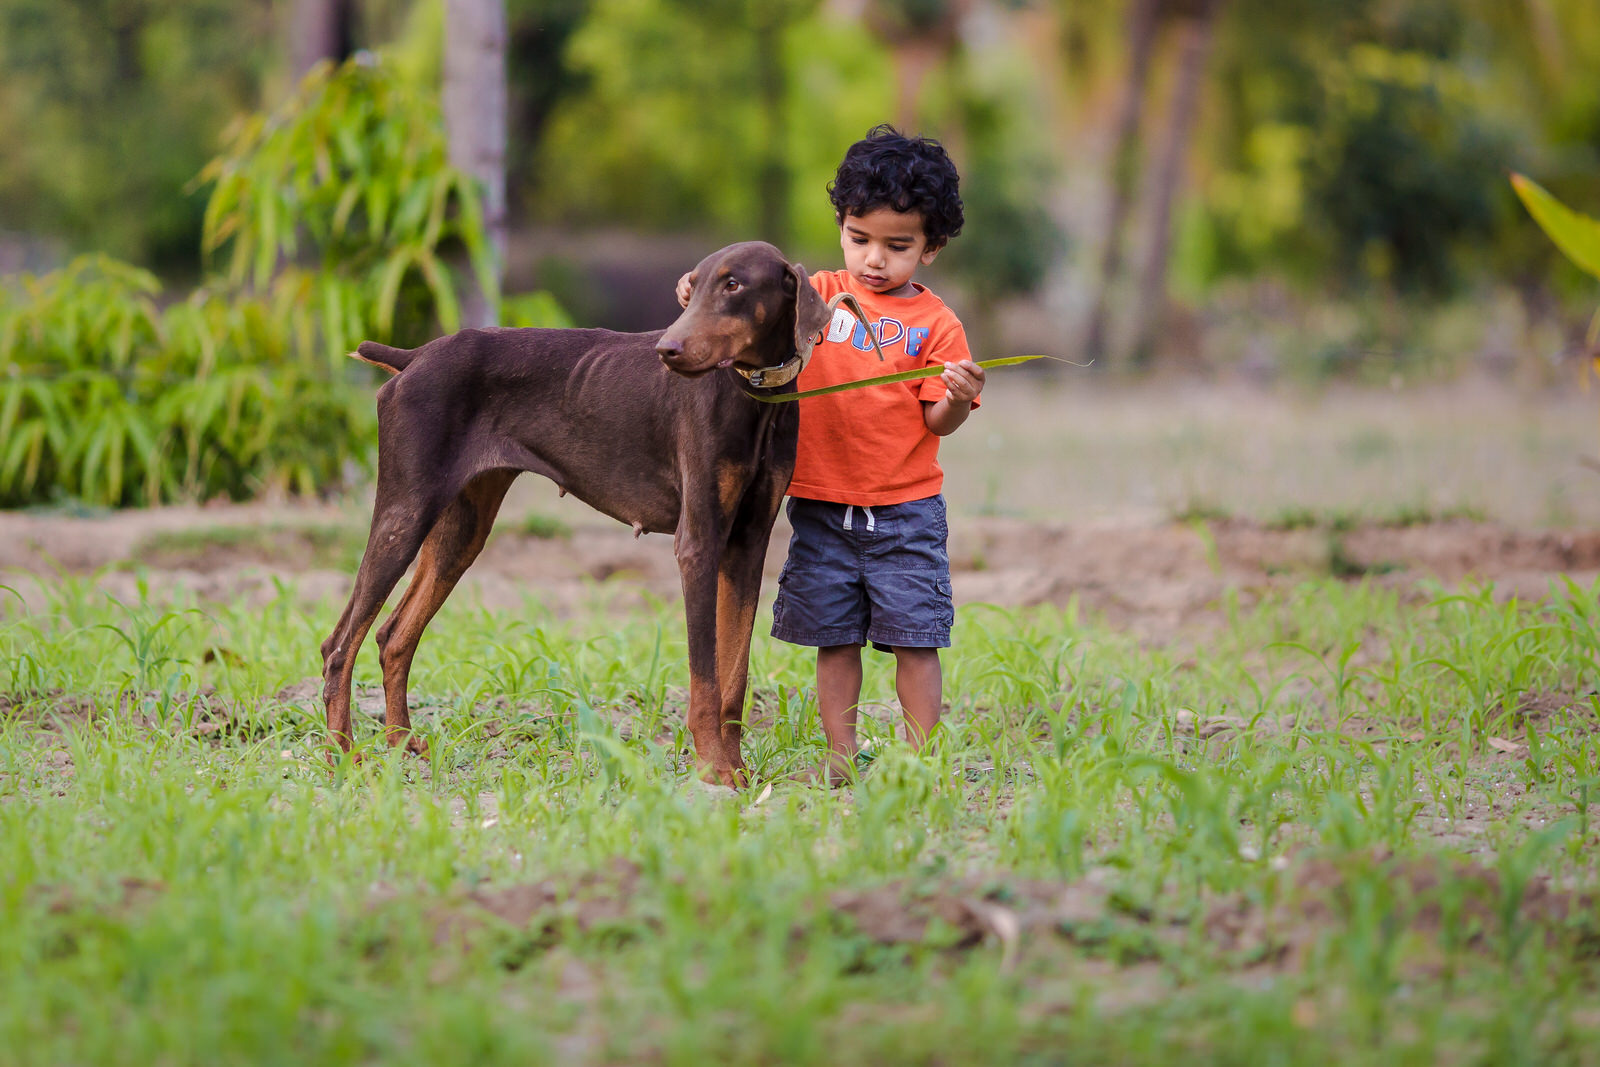 20150328-Sahas-With-Dog-in-fileds-179-Edit.jpg